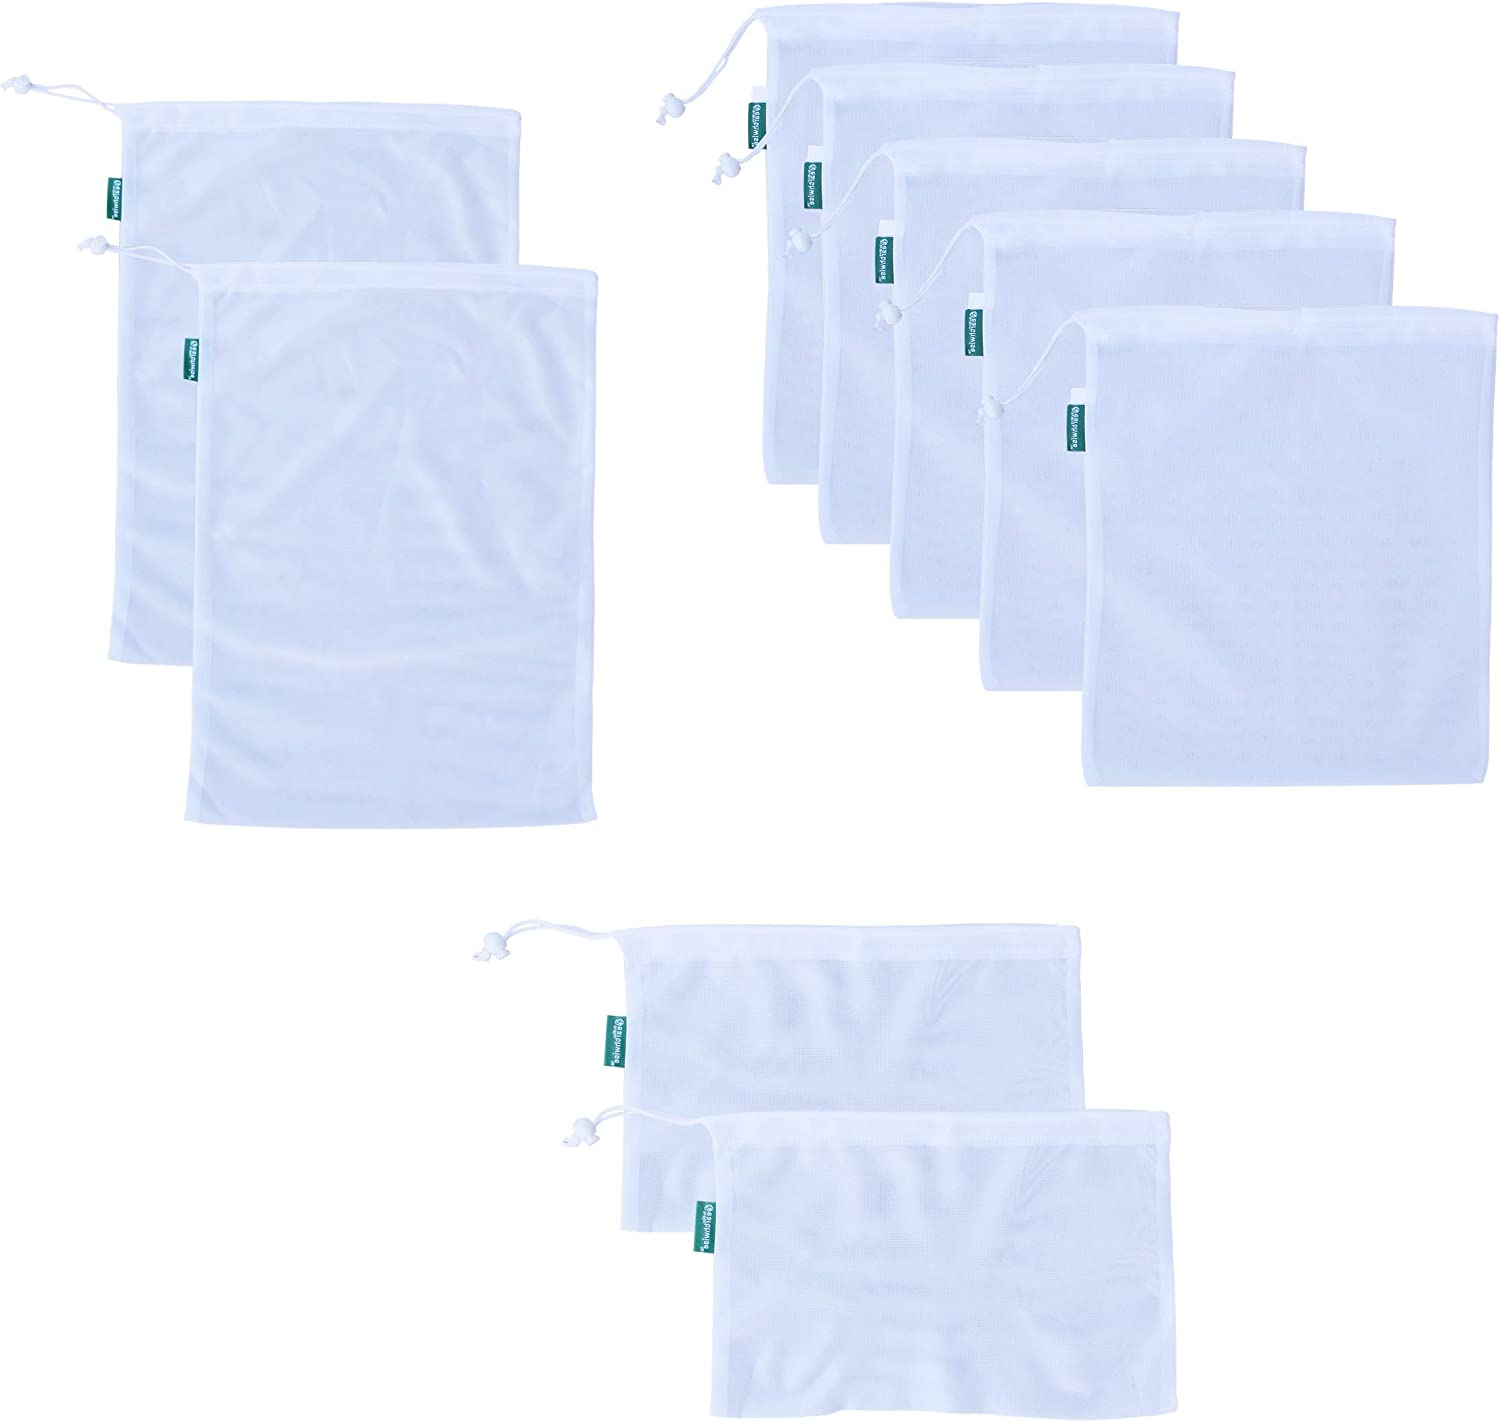 Earthwise Reusable Mesh Produce Bags - TARE WEIGHT TAGS on every bag Premium MACHINE WASHABLE Grocery Set of 9-3 Different Sizes 12x17in, 12x14in, 12x8in